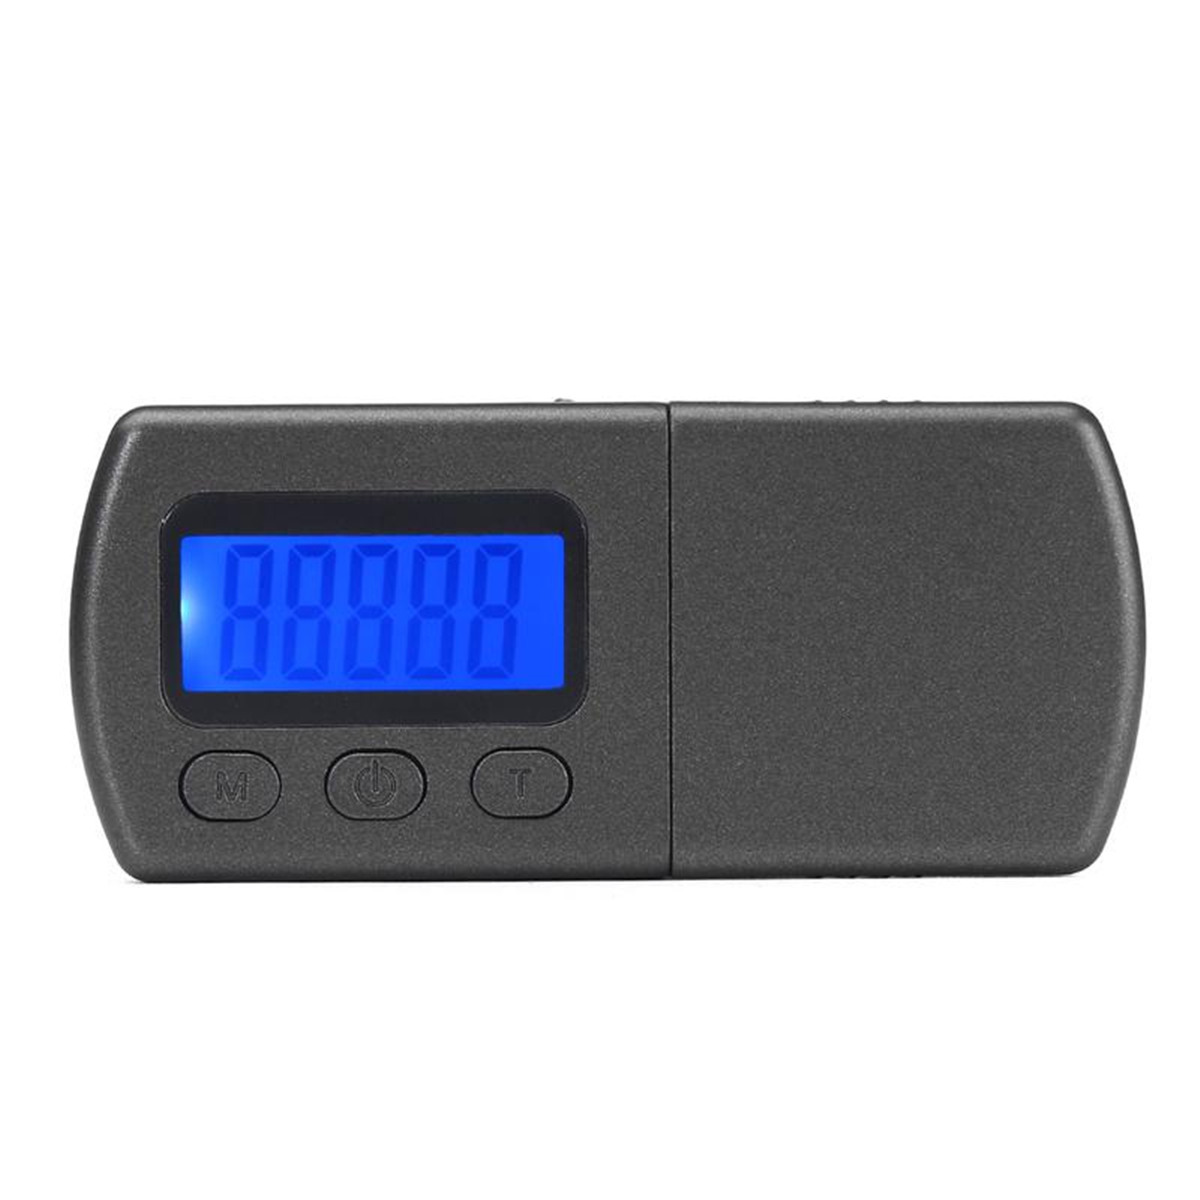 LEORY Vesion Professional LP Digital Turntable Stylus Force Scale Gauge Led Dzr Arm Load Meter For Tonearm Phono Cartridge